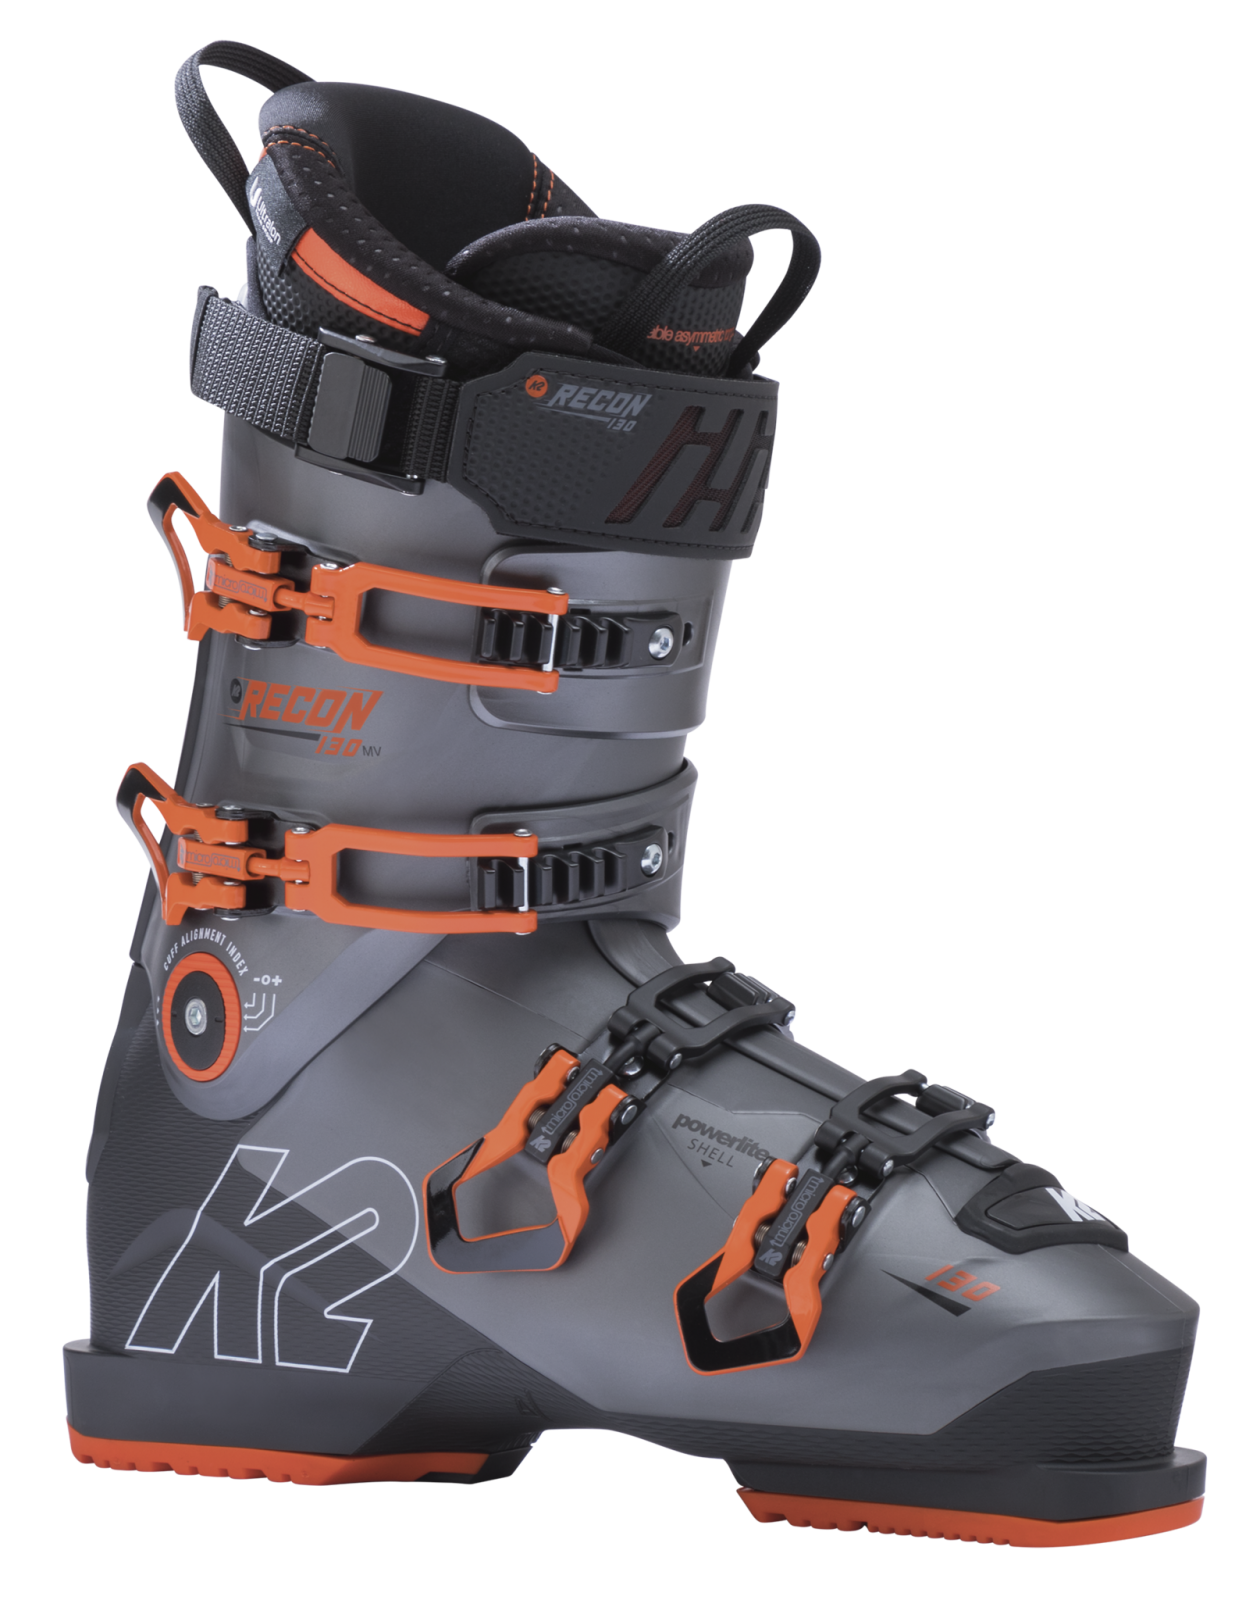 2020 K2 Recon 130 LV Men's Ski Boots